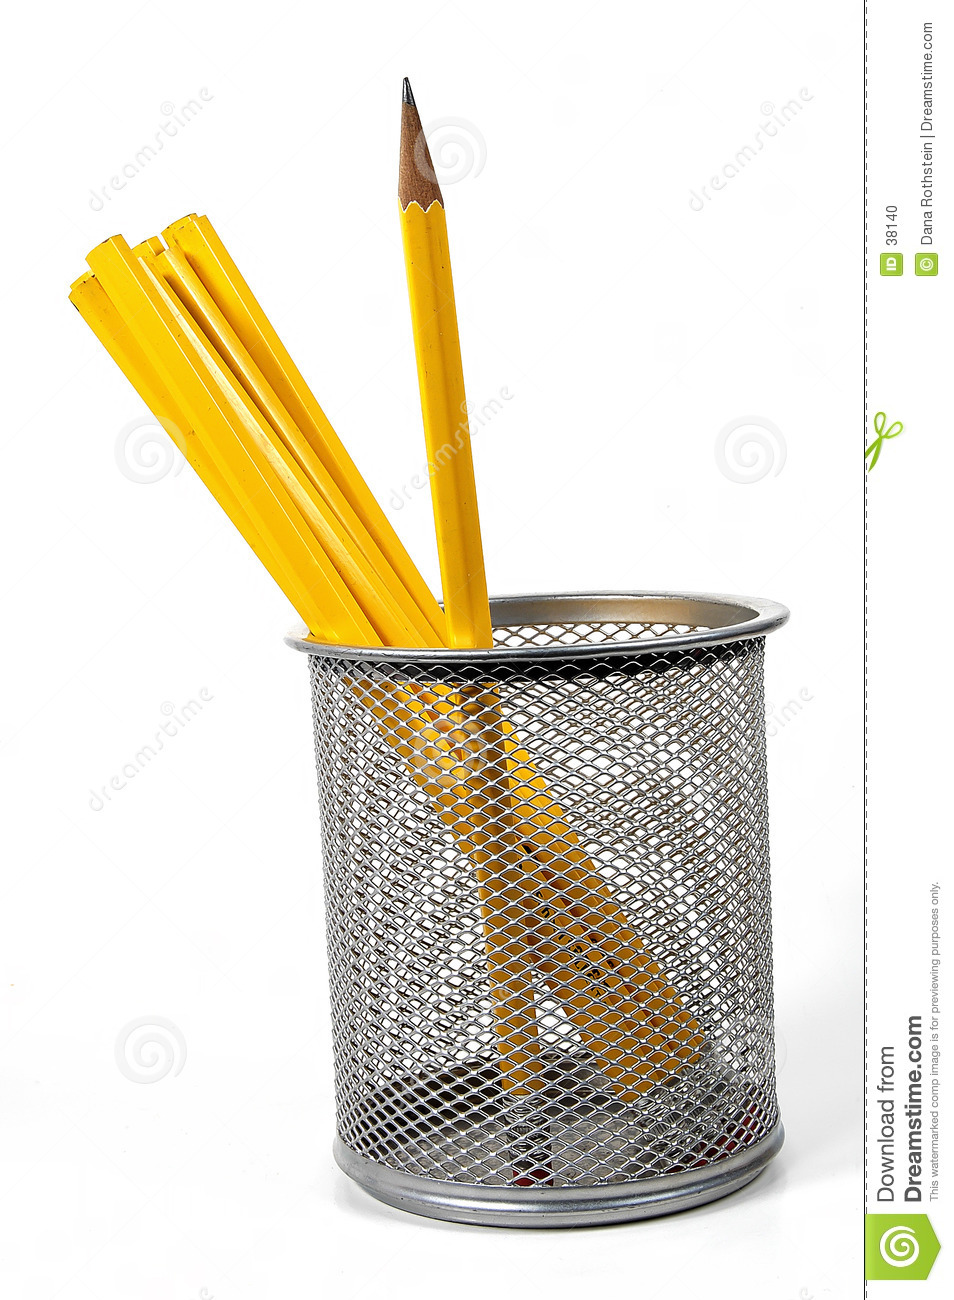 Unsharpened Pencils 2